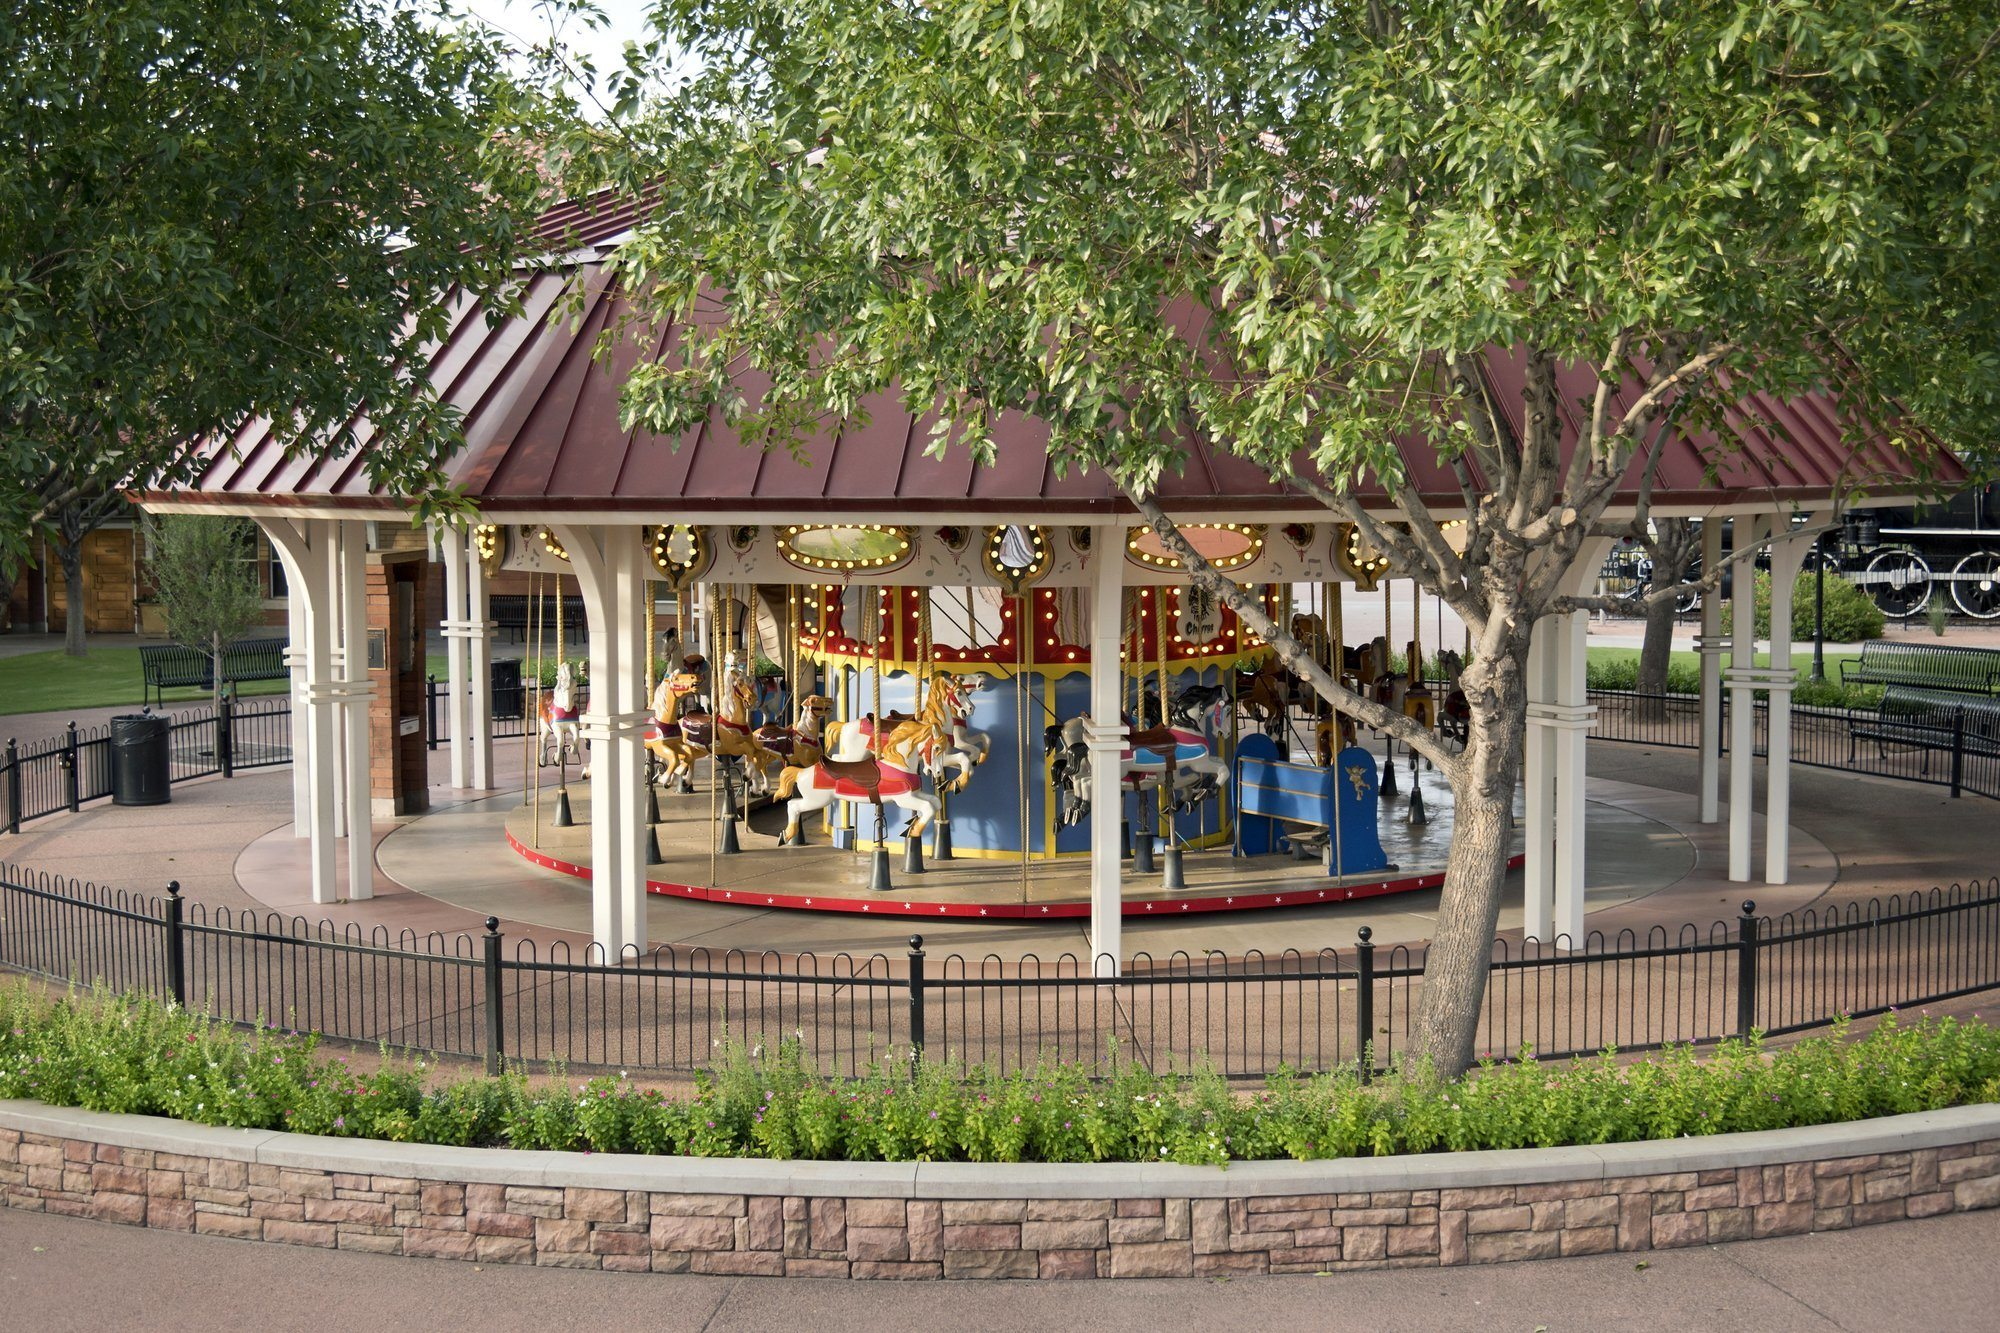 Charros Carousel at McCormick-Stillman Railroad Park